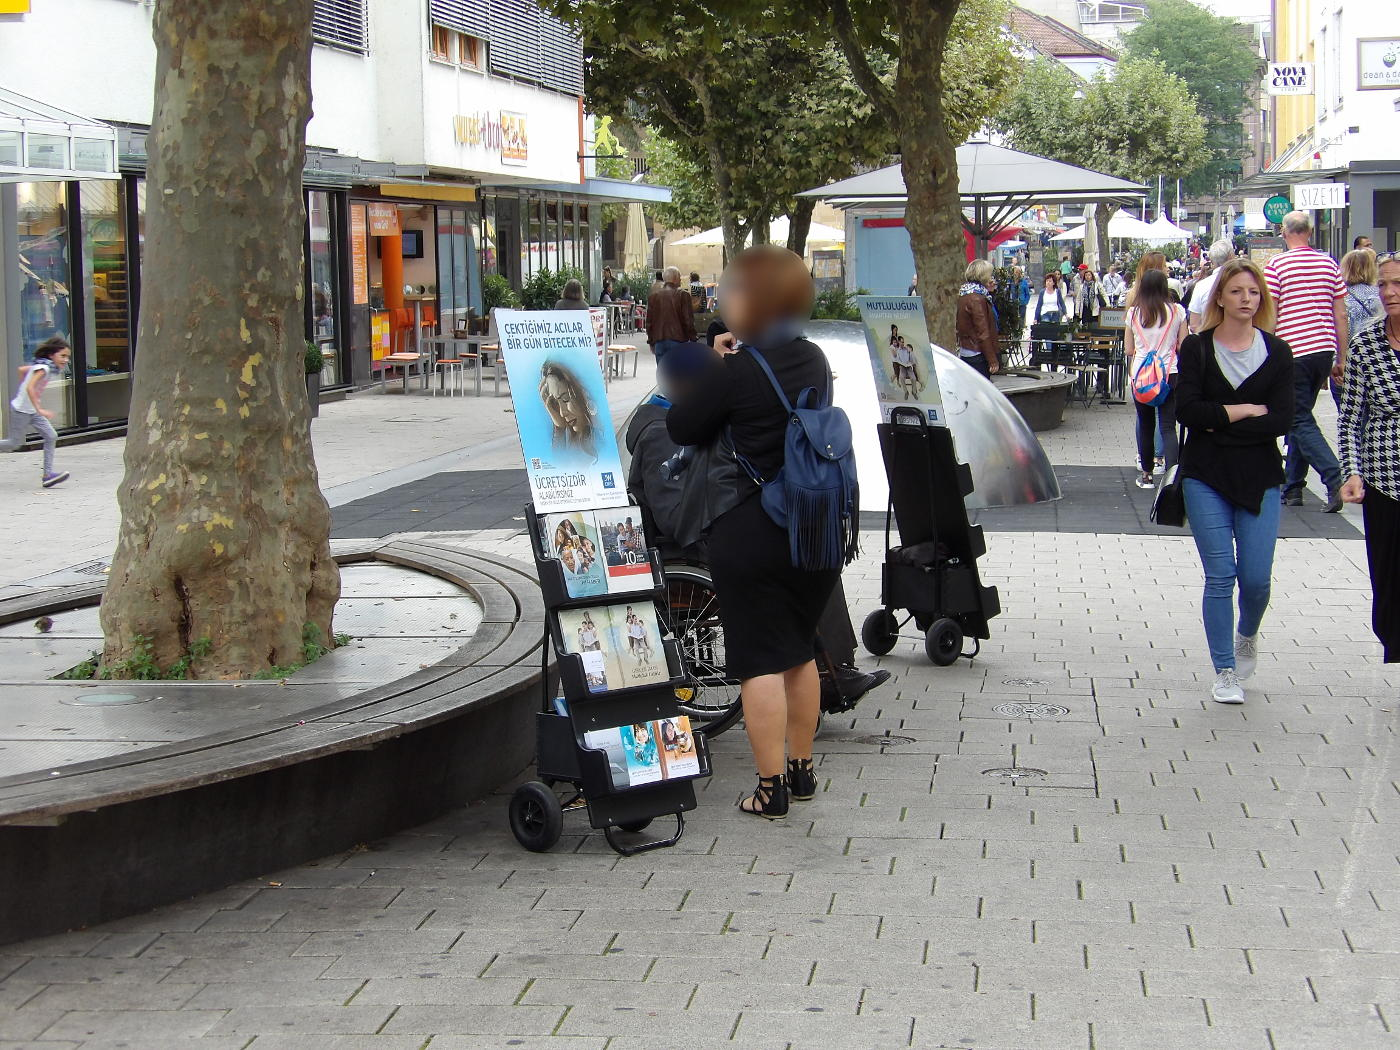 Heilbronn: Jehovah and his serial murder